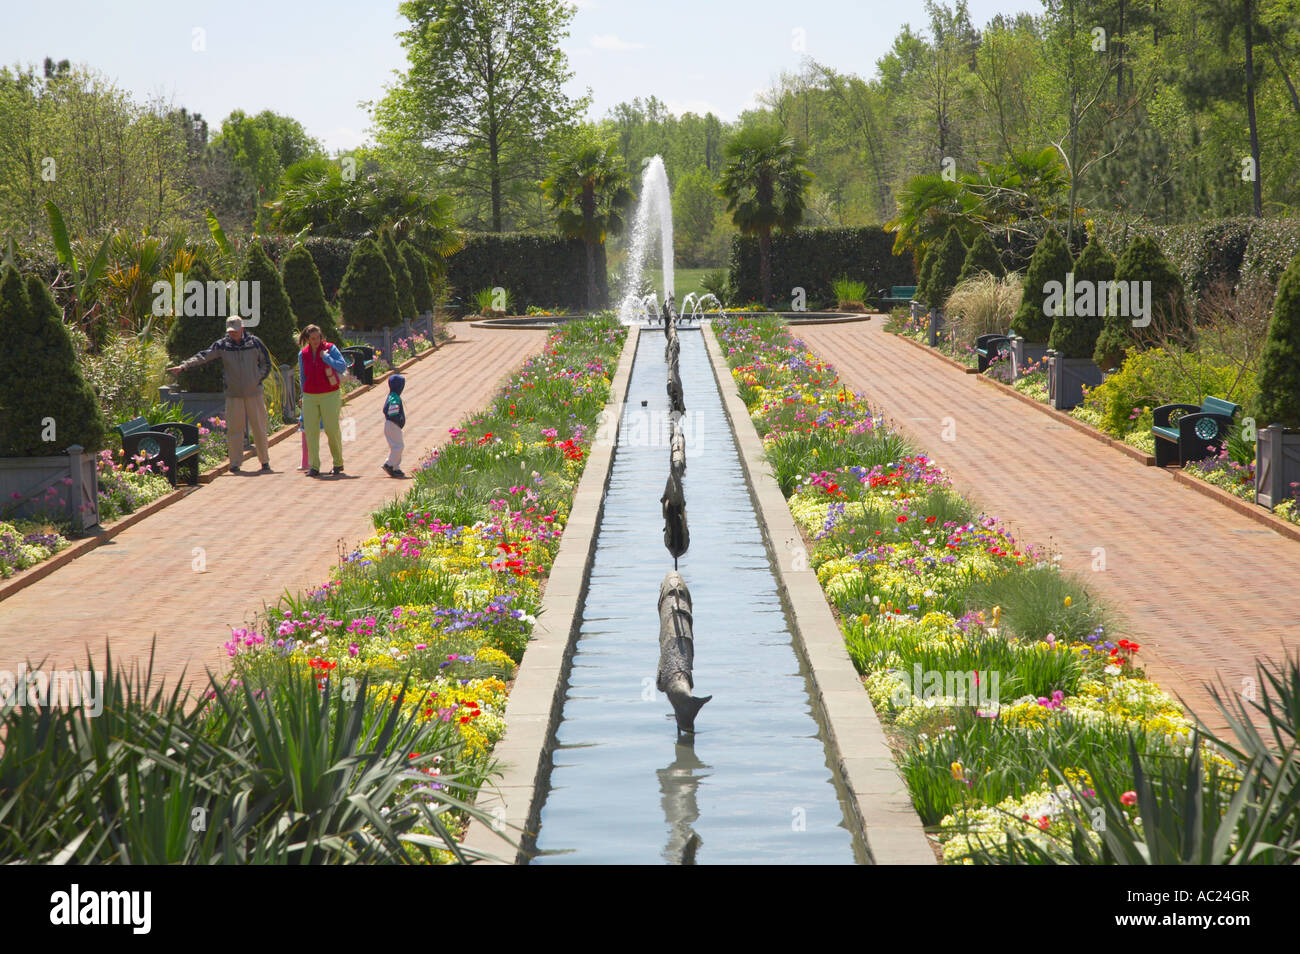 Attirant Spring Canal Garden And Fountain At Daniel Stowe Botanical Garden Belmont  North Carolina